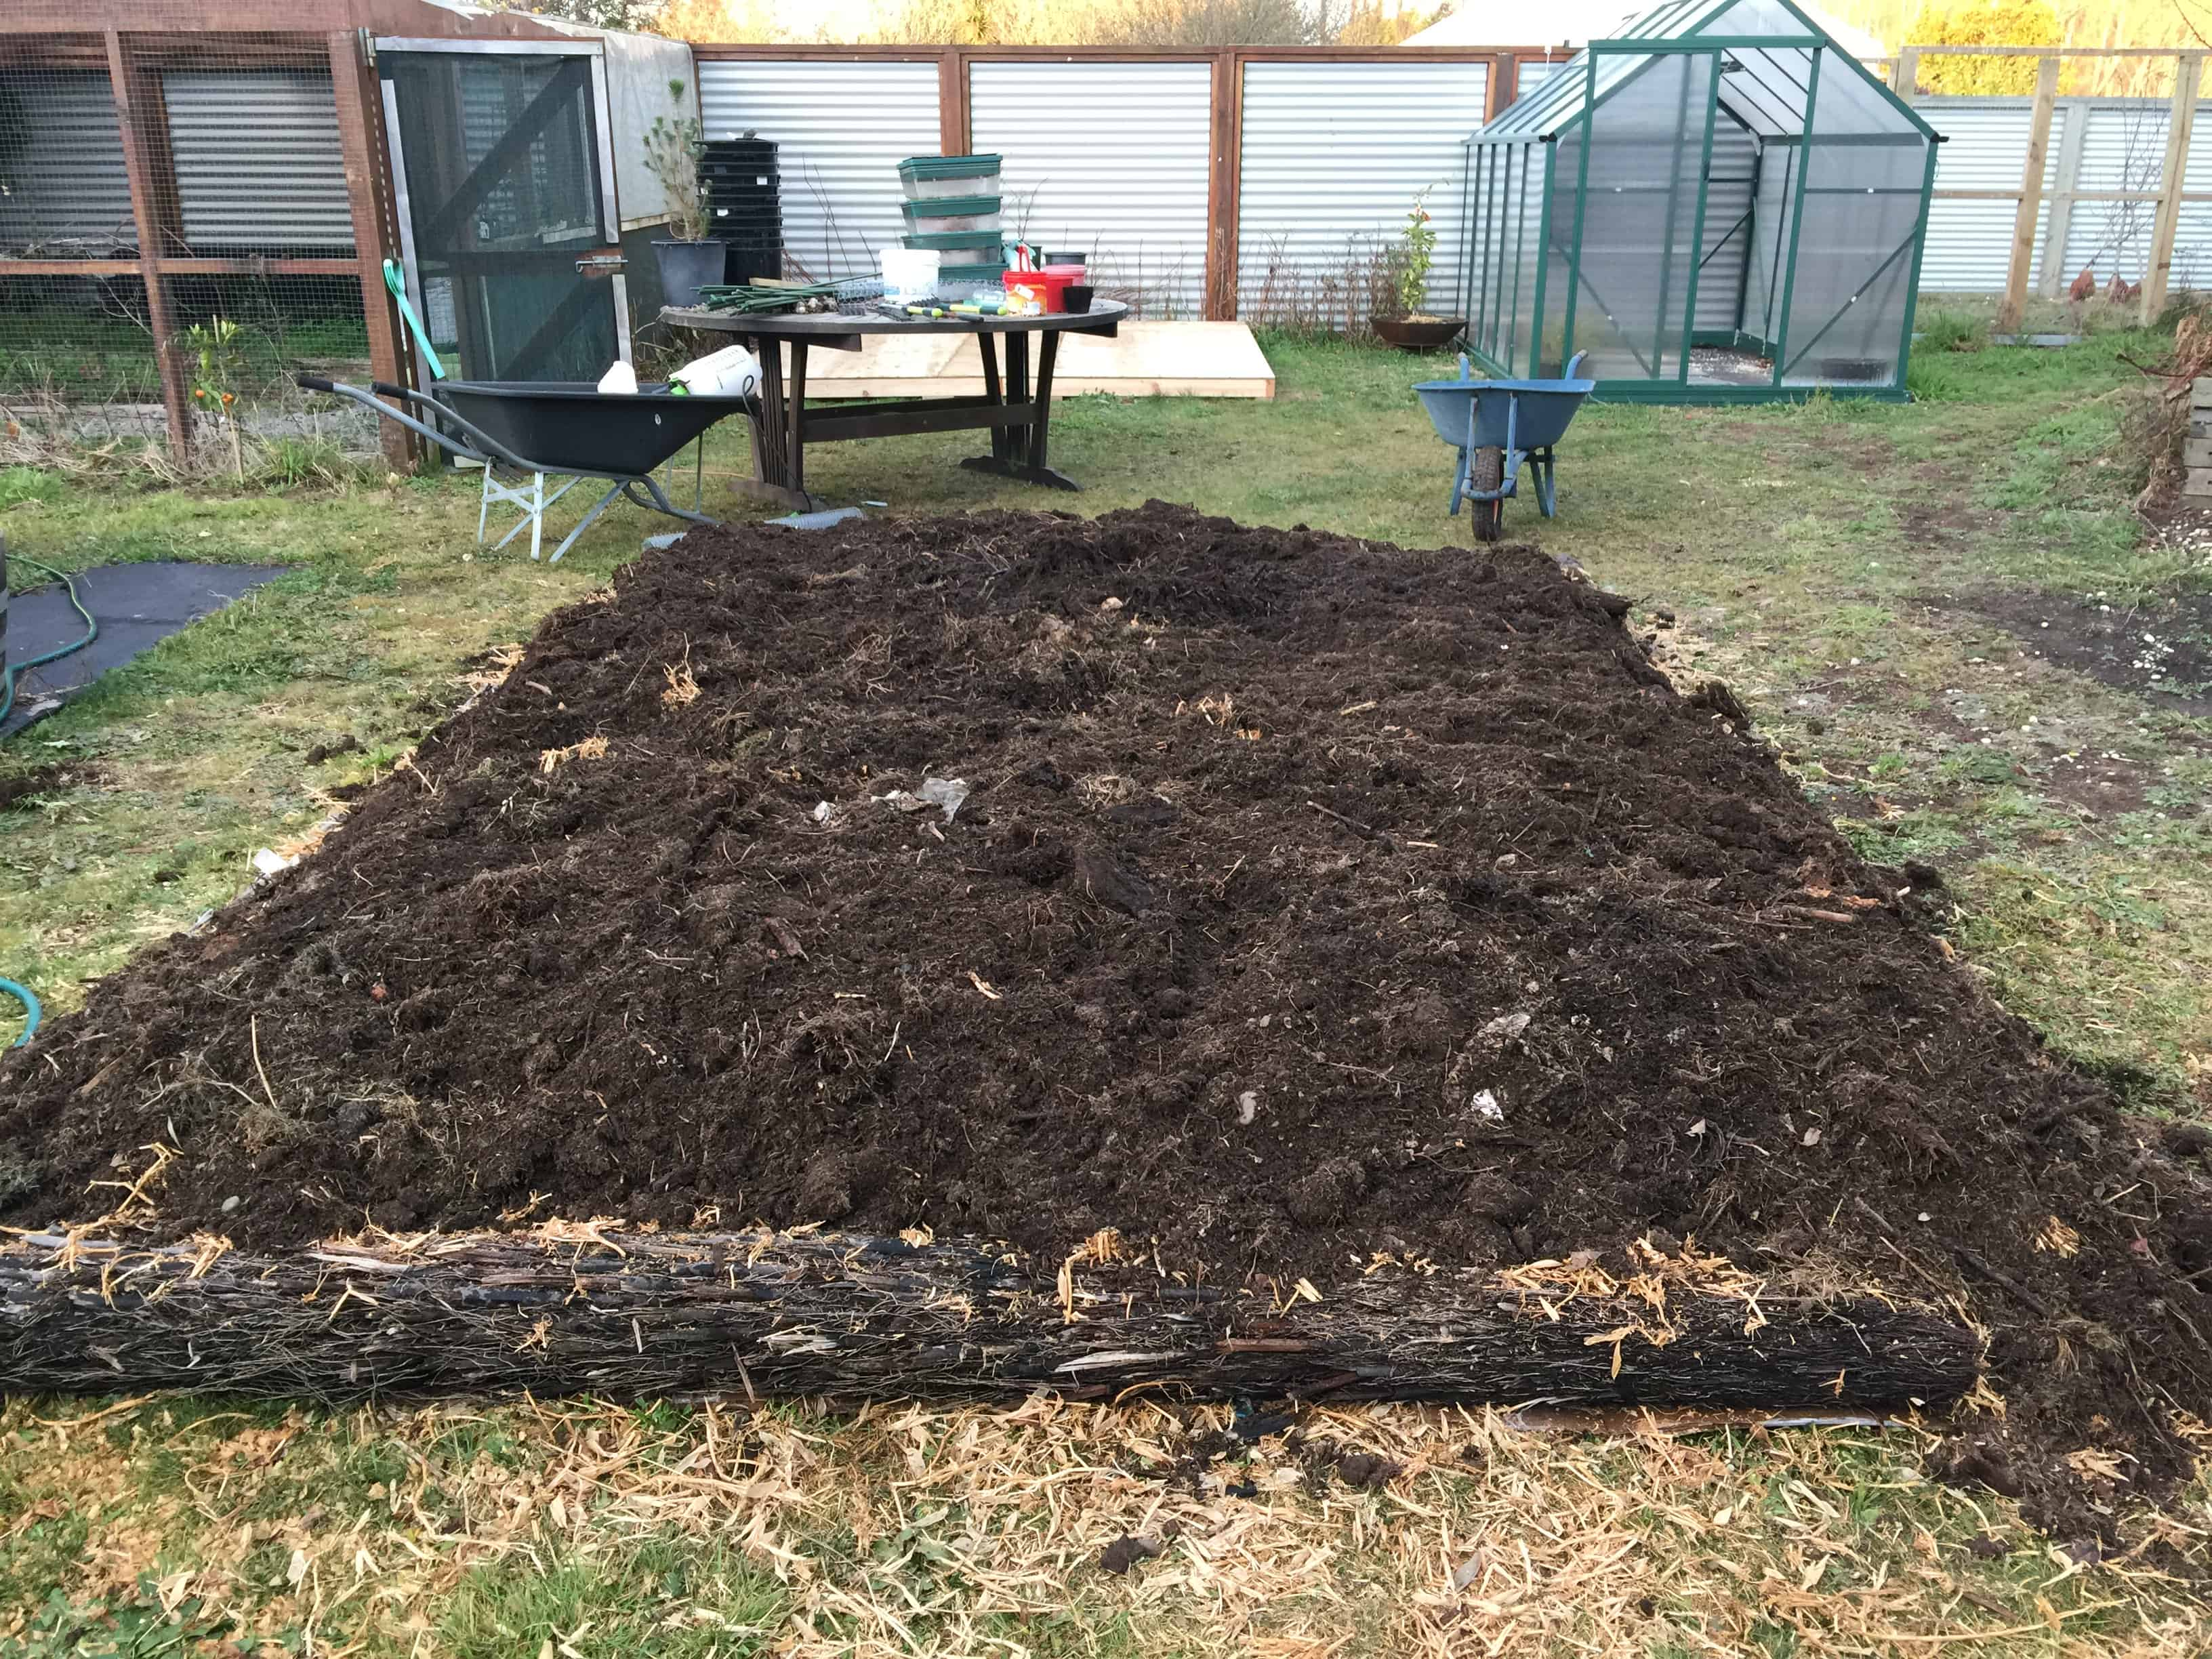 No dig vegetable gardens with raised garden beds -  No Dig Gardening